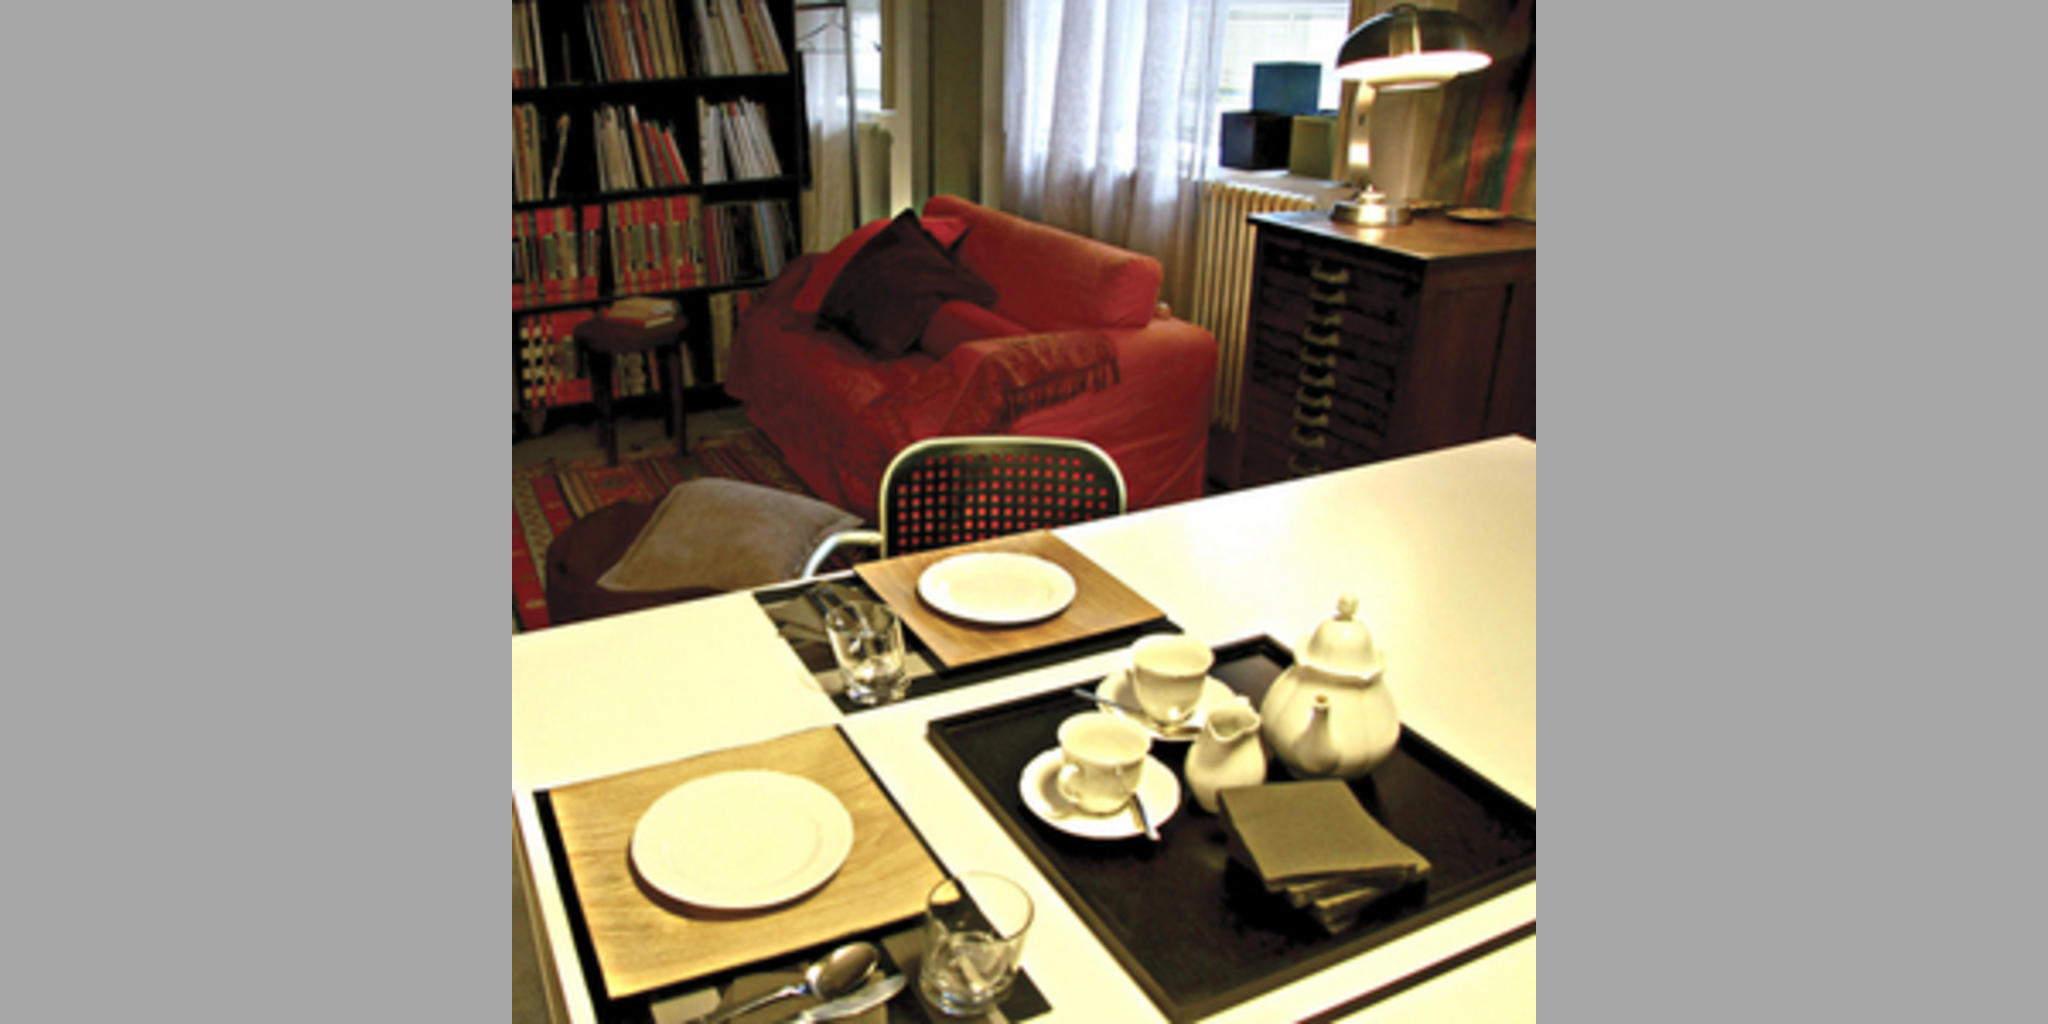 Bed & Breakfast Vigevano - Vigevano